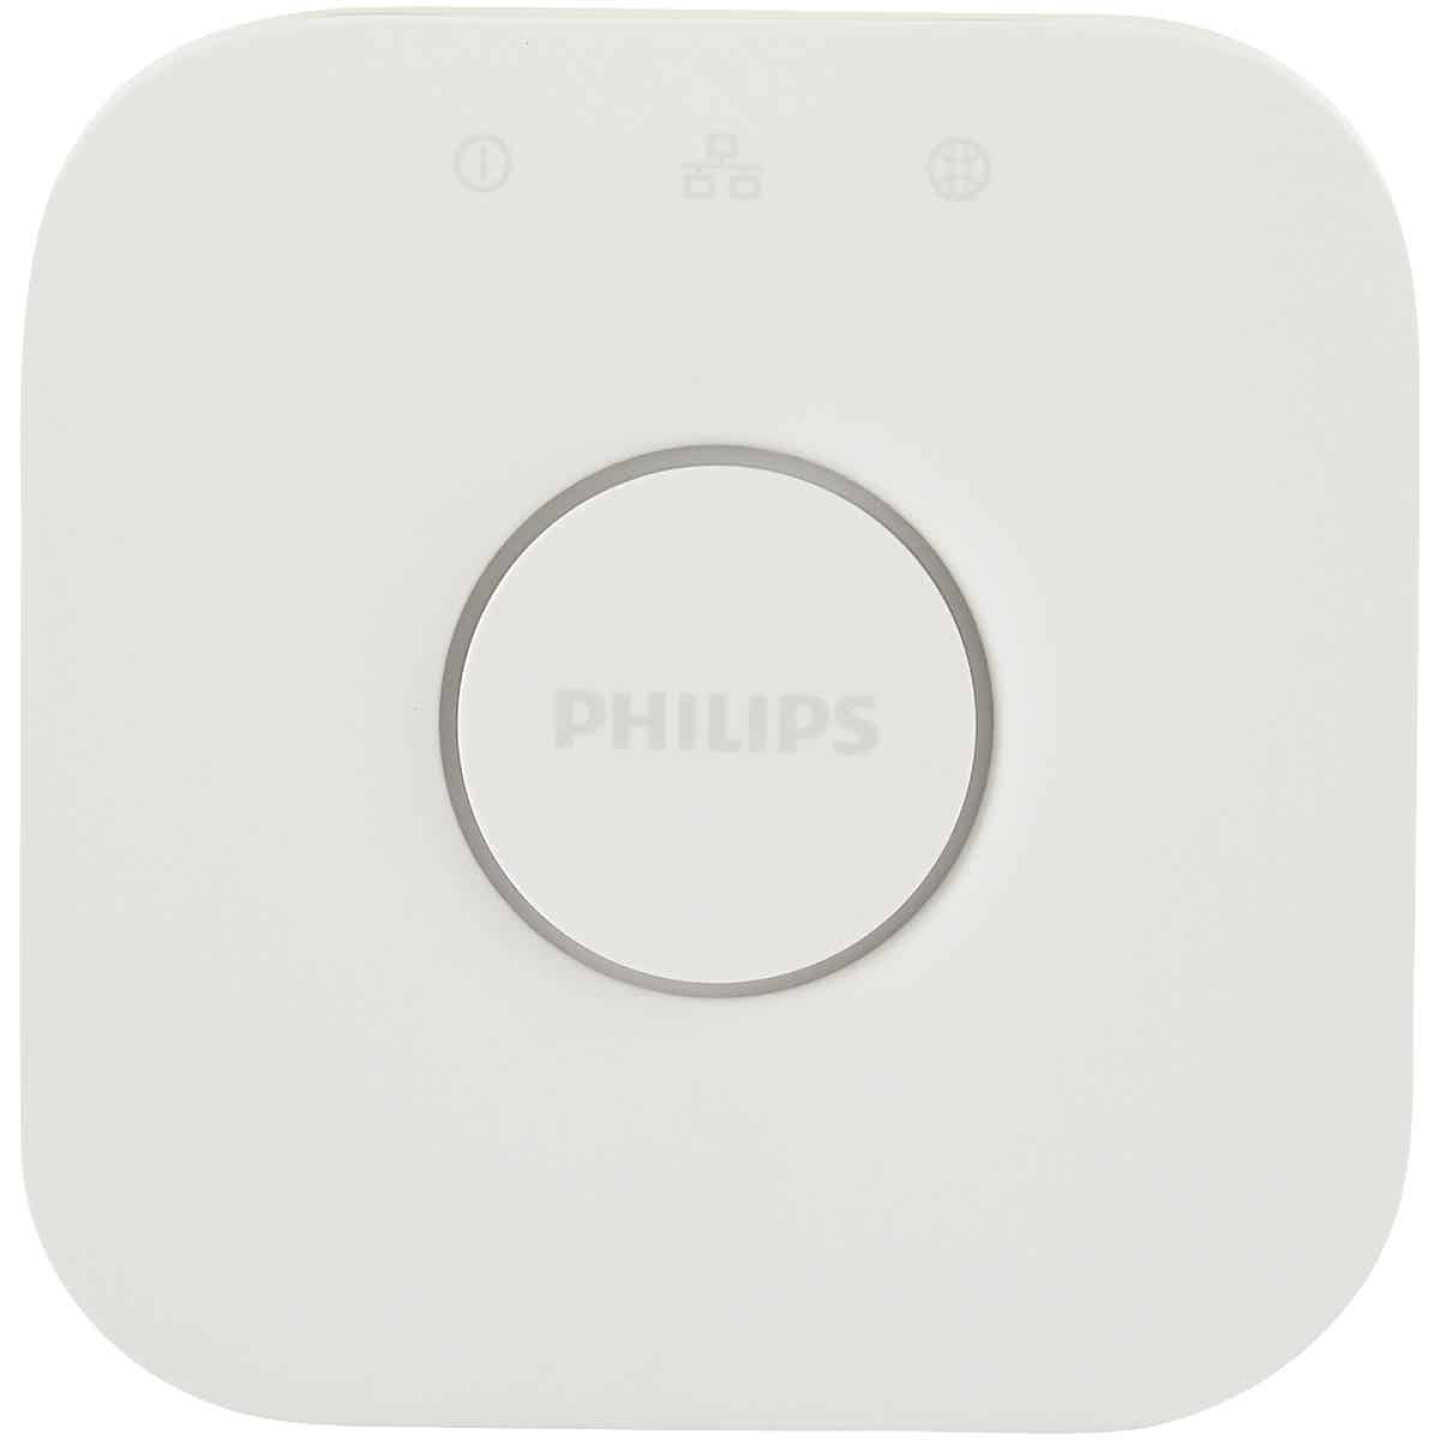 Philips Hue White & Color Ambiance 60W Equivalent Medium A19 Dimmable LED Light Bulb Bluetooth Starter Kit Image 7